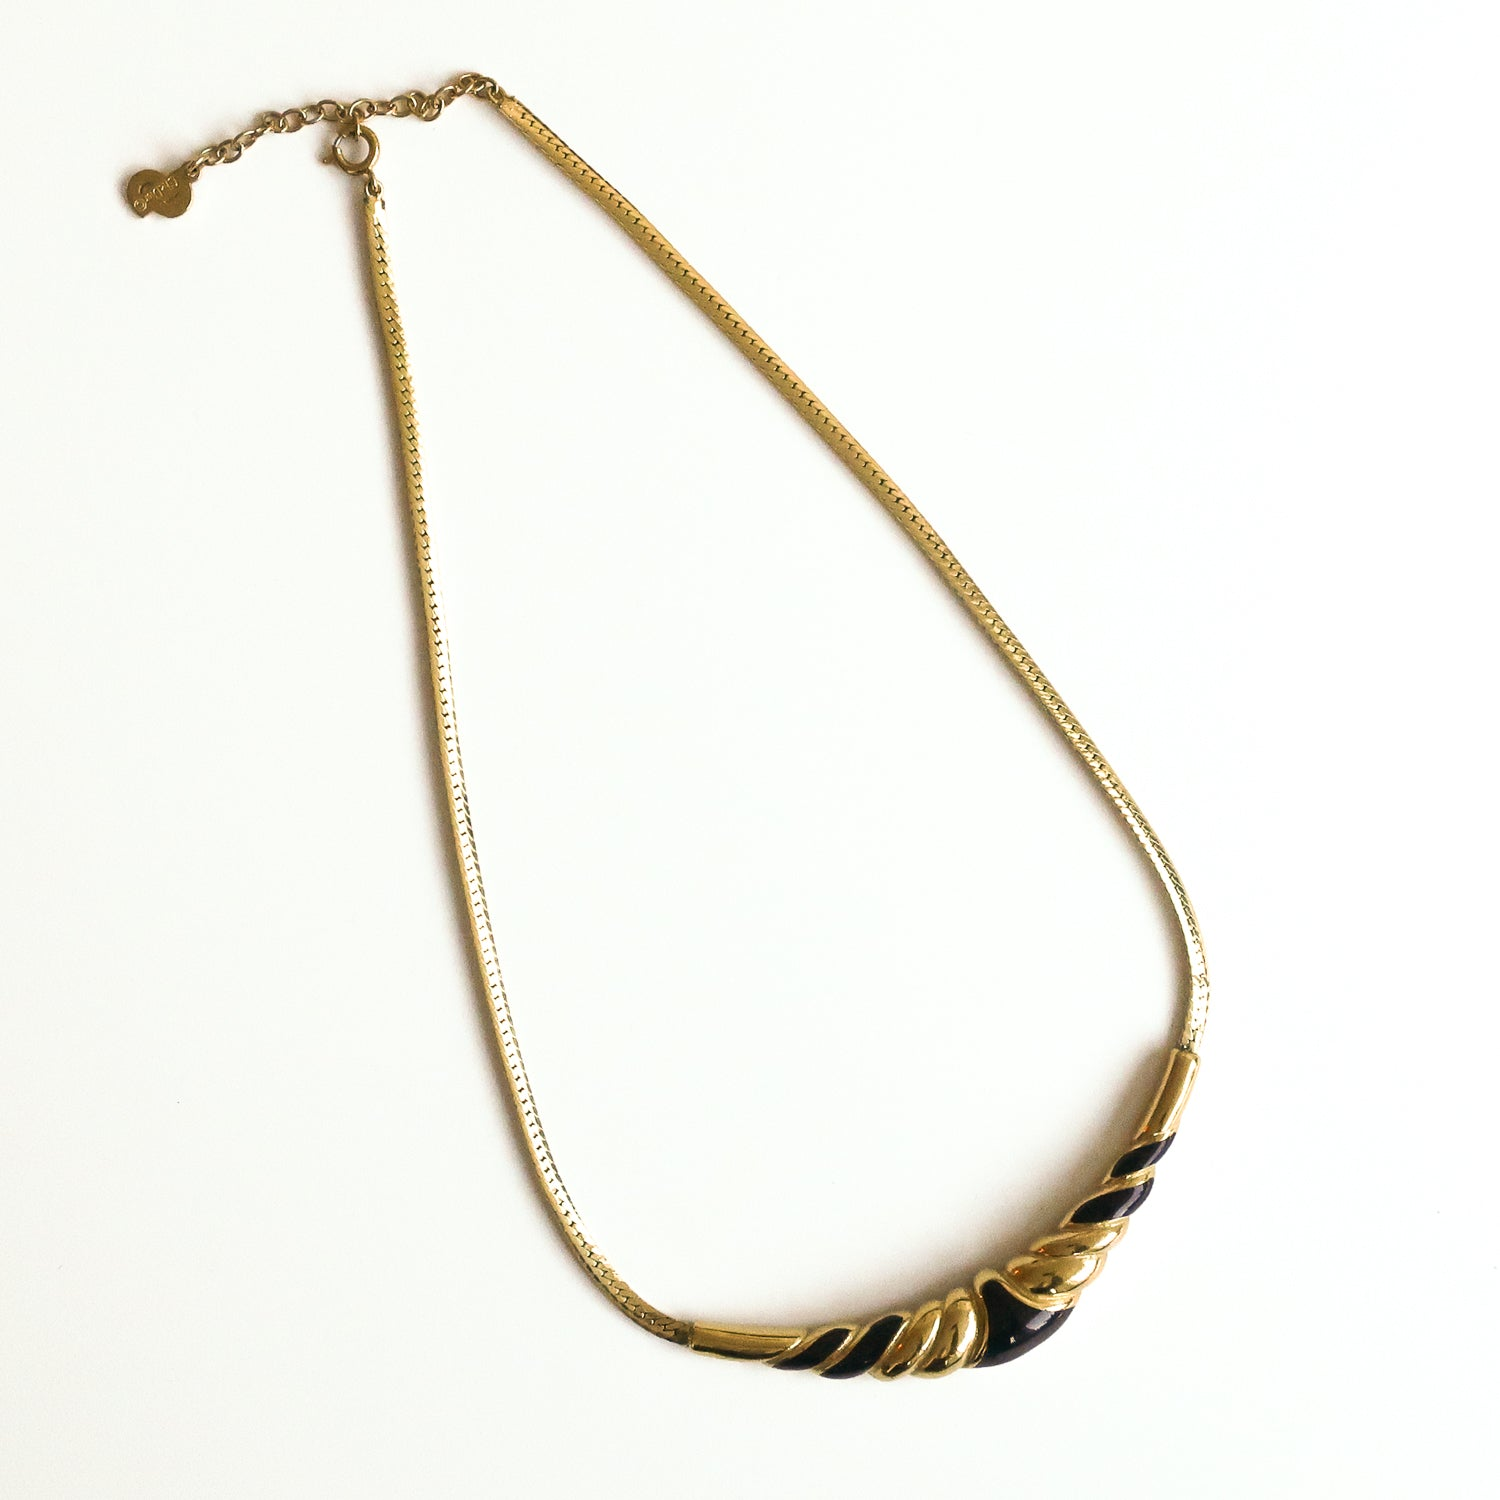 "Second Room Shop Vintage. Shop vintage, shop sustainable. Vintage gold tone and black enamel Christian Dior necklace from the 1980s. This necklace is a short choker style; hanging length is 6.5"", total length is 16"" to 18"", as there is a 2"" extension chain at the back of the clasp. The gold and enamel pendant is 3"" wide, and the chain is a linked herringbone style."